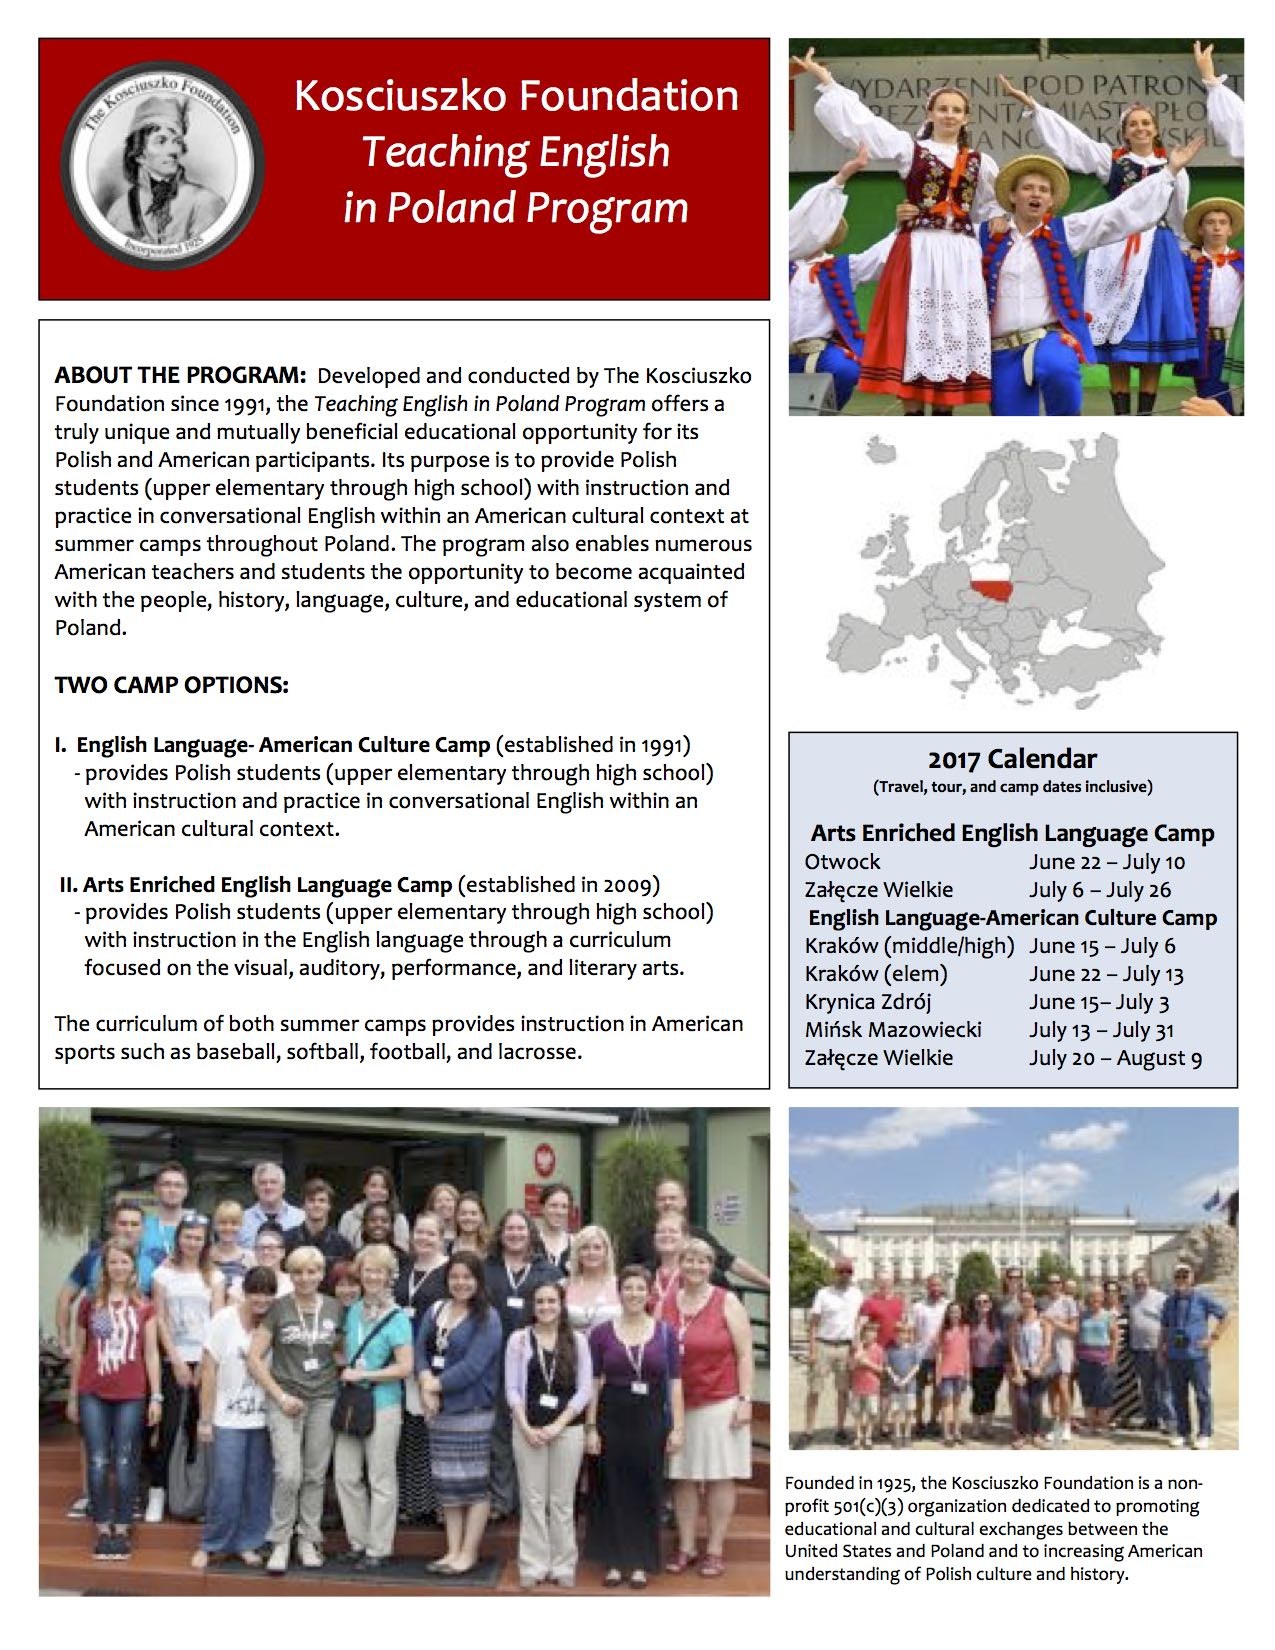 kosciuszko foundation american center for polish culture 2017 teaching english in 2017